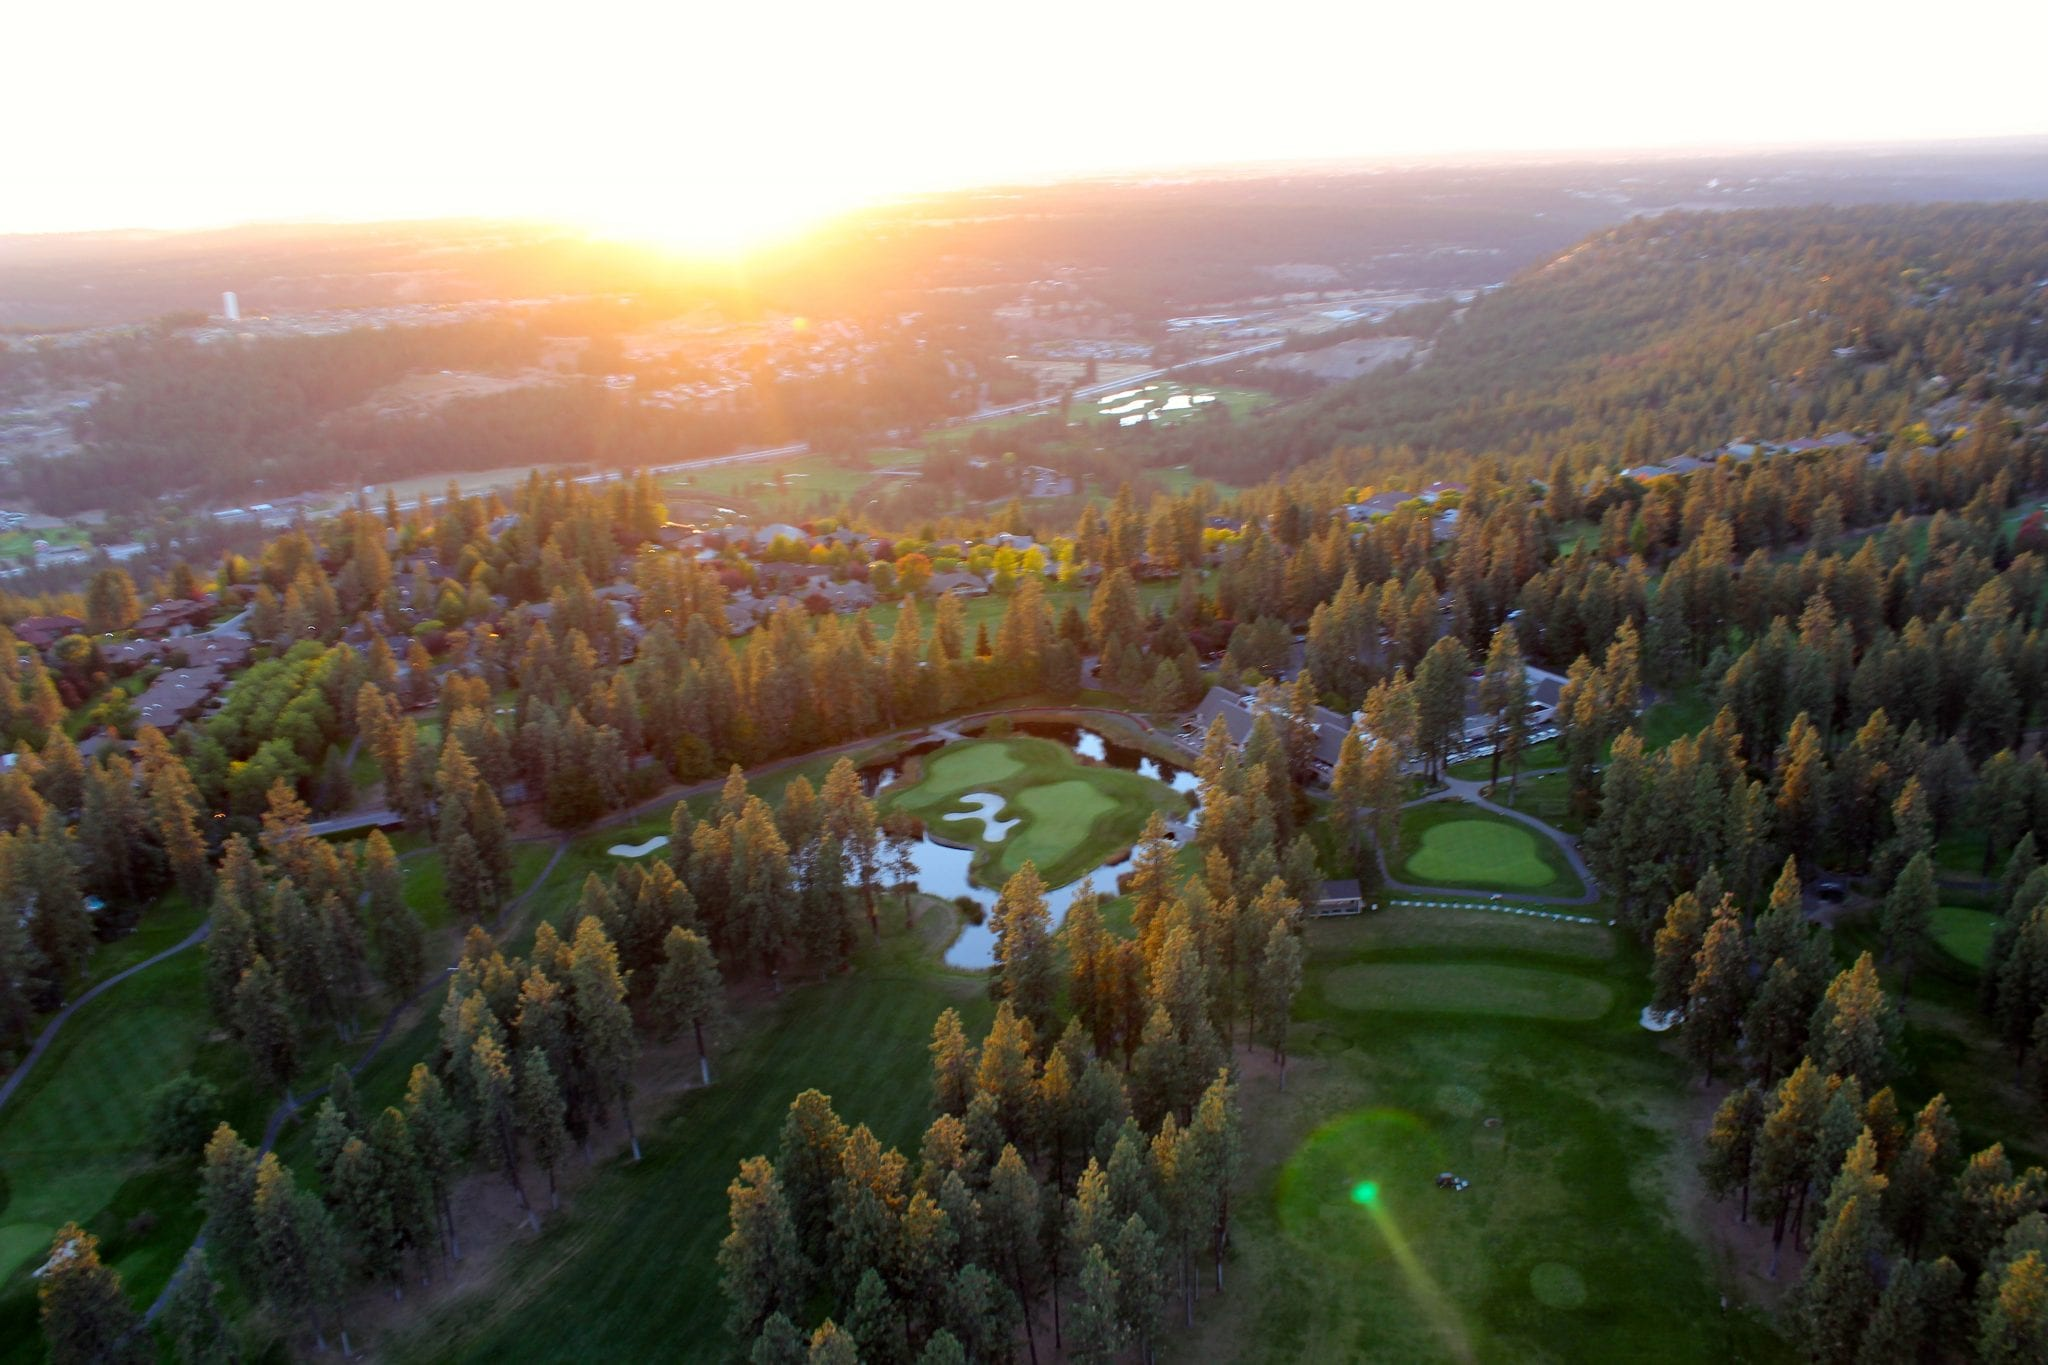 View of Manito course from helicopter